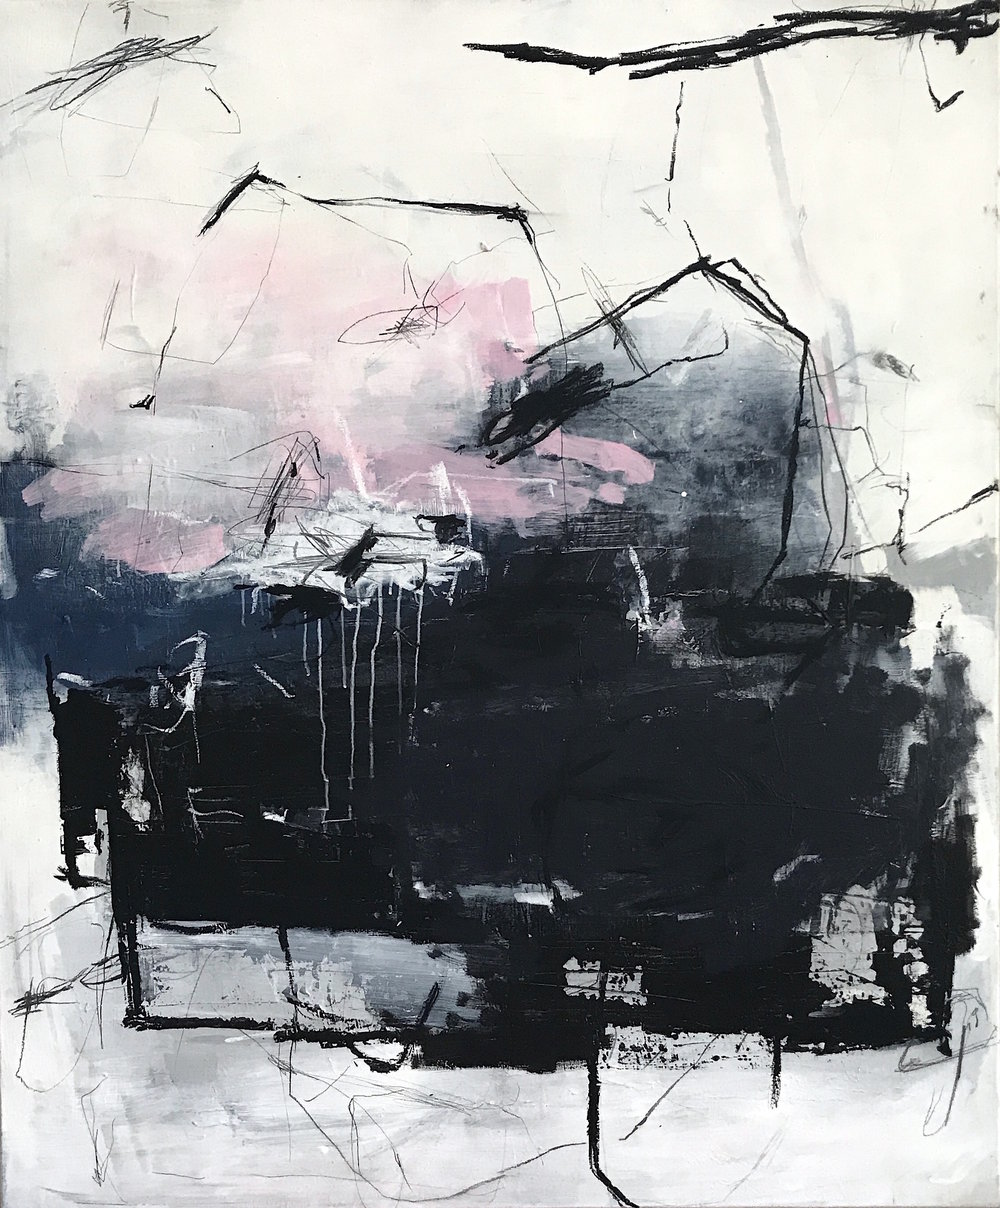 Painting No 3602, acrylic, charcoal, pastels on stretched canvas, 120x100cm, 2018